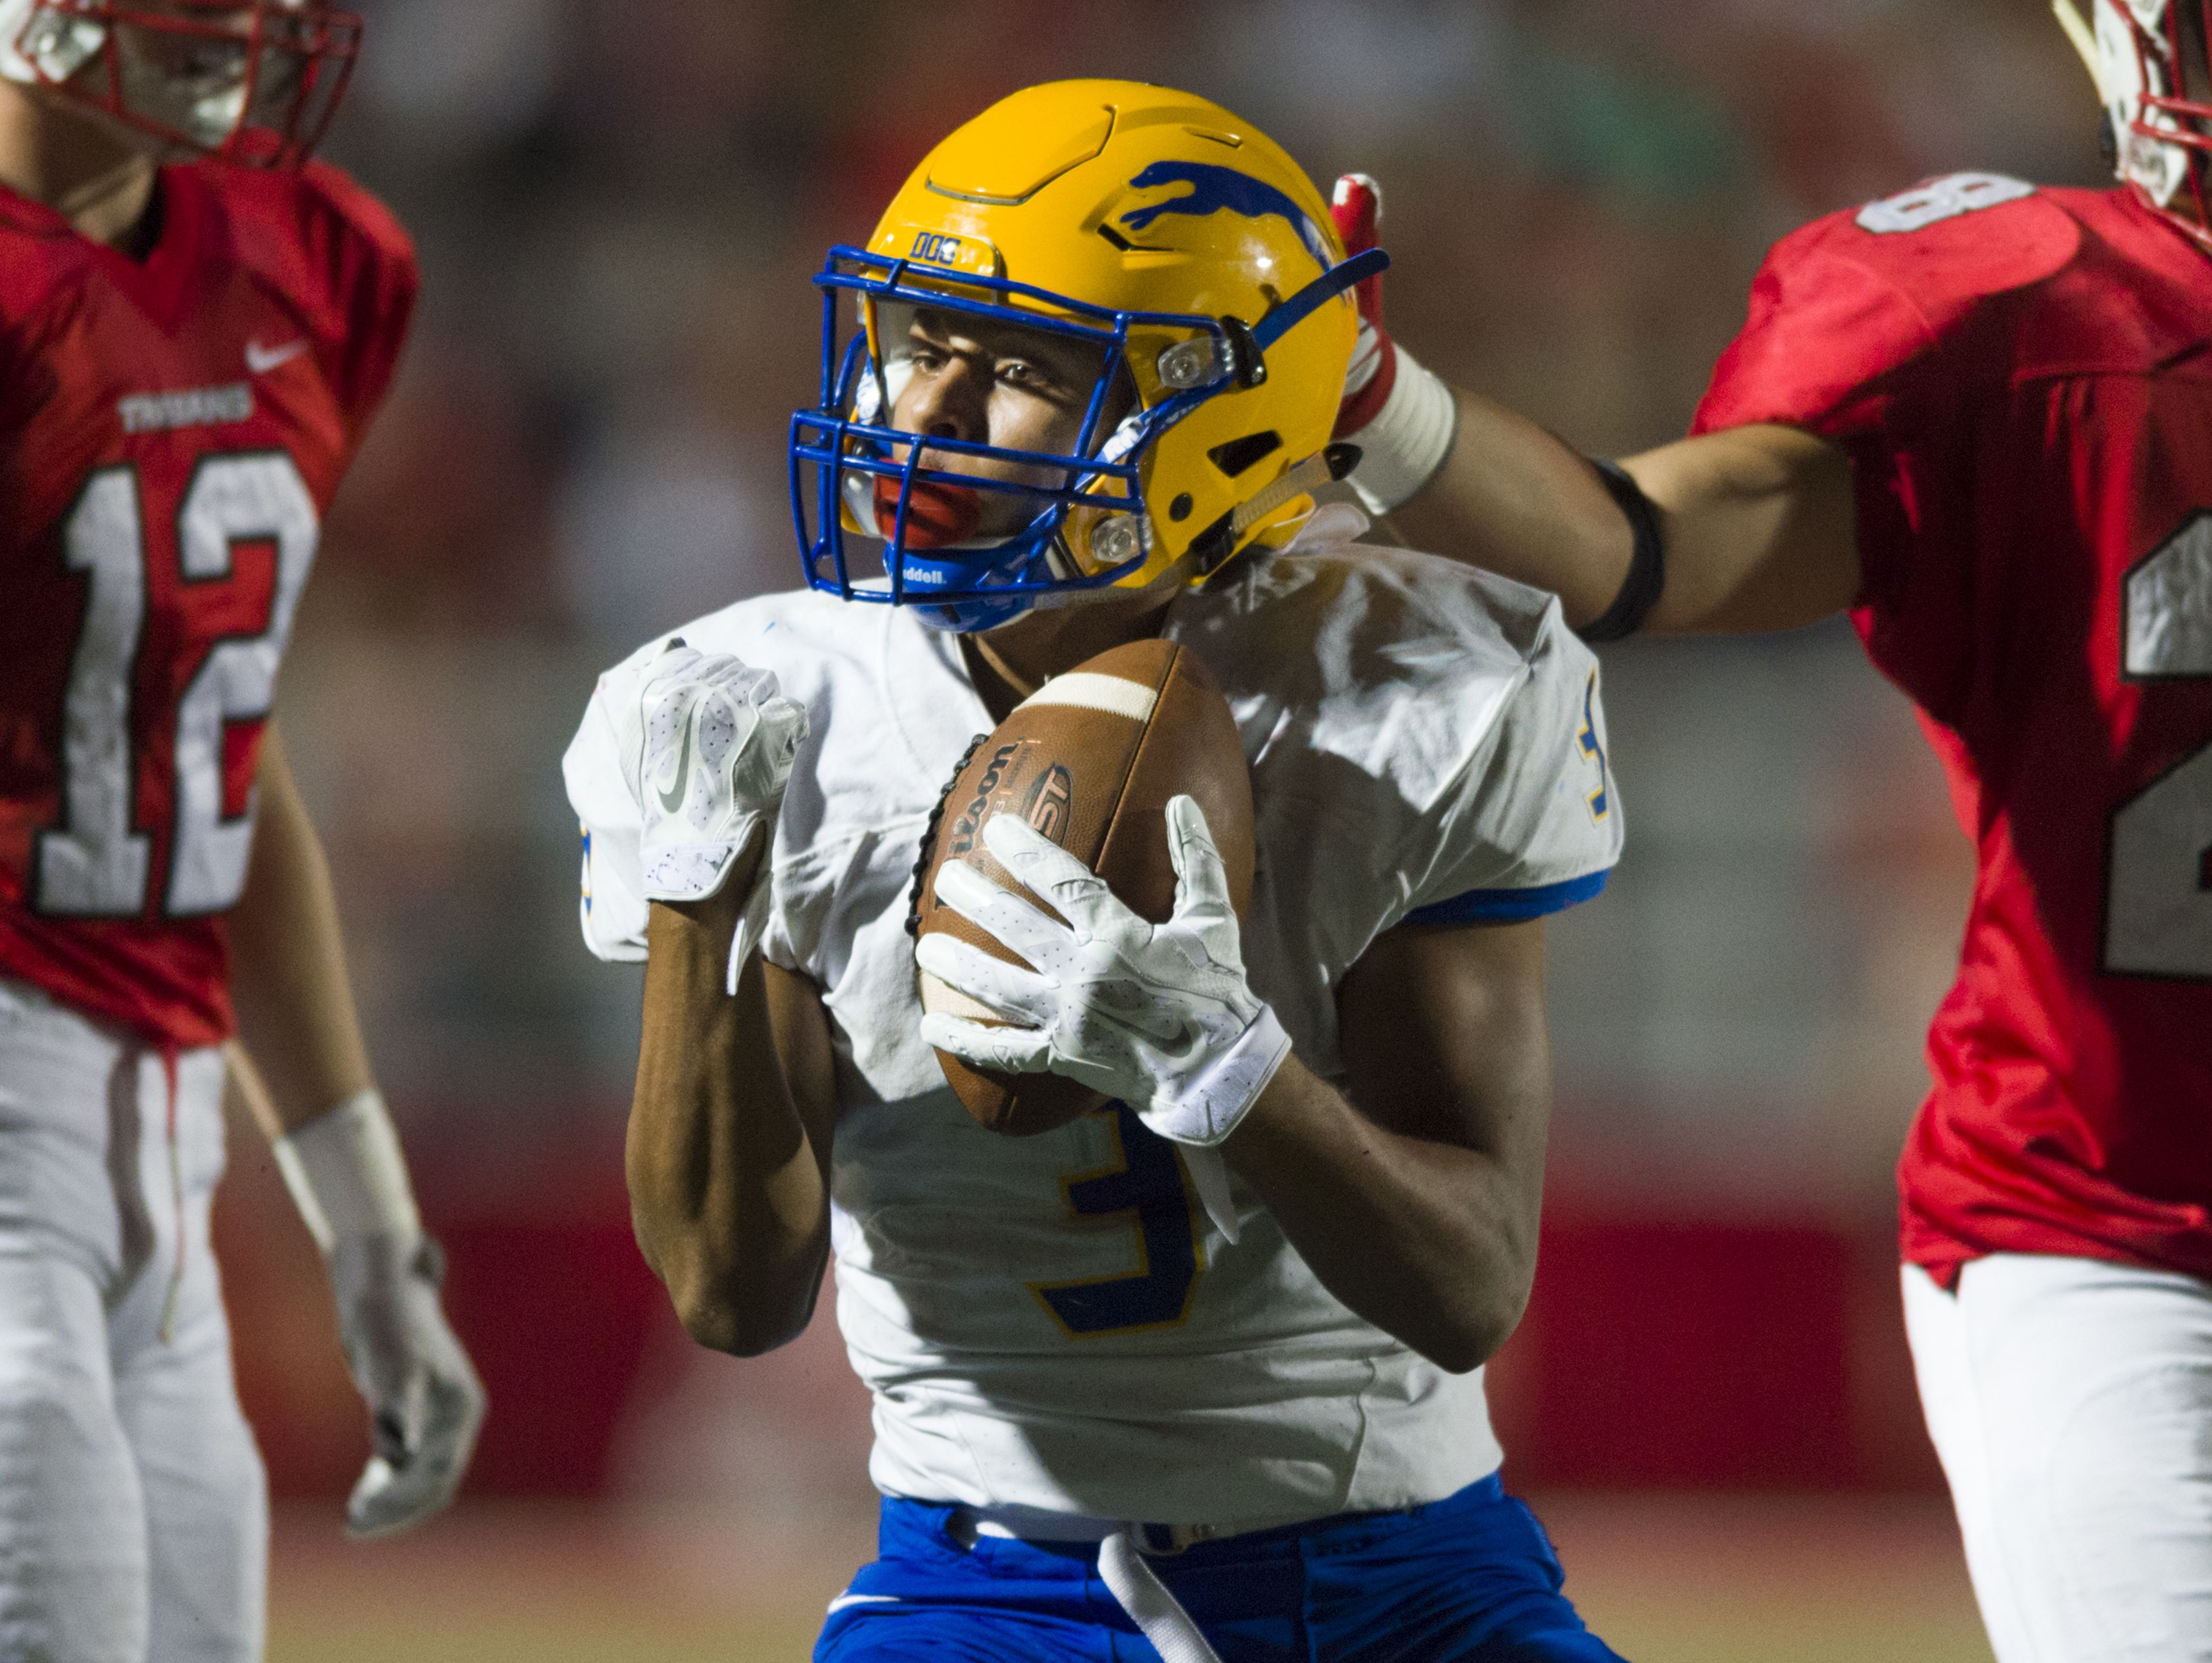 Carmel wide receiver Jalen Walker committed to Miami (Ohio) this week after his offer from Cincinnati was pulled by its new coaching staff.